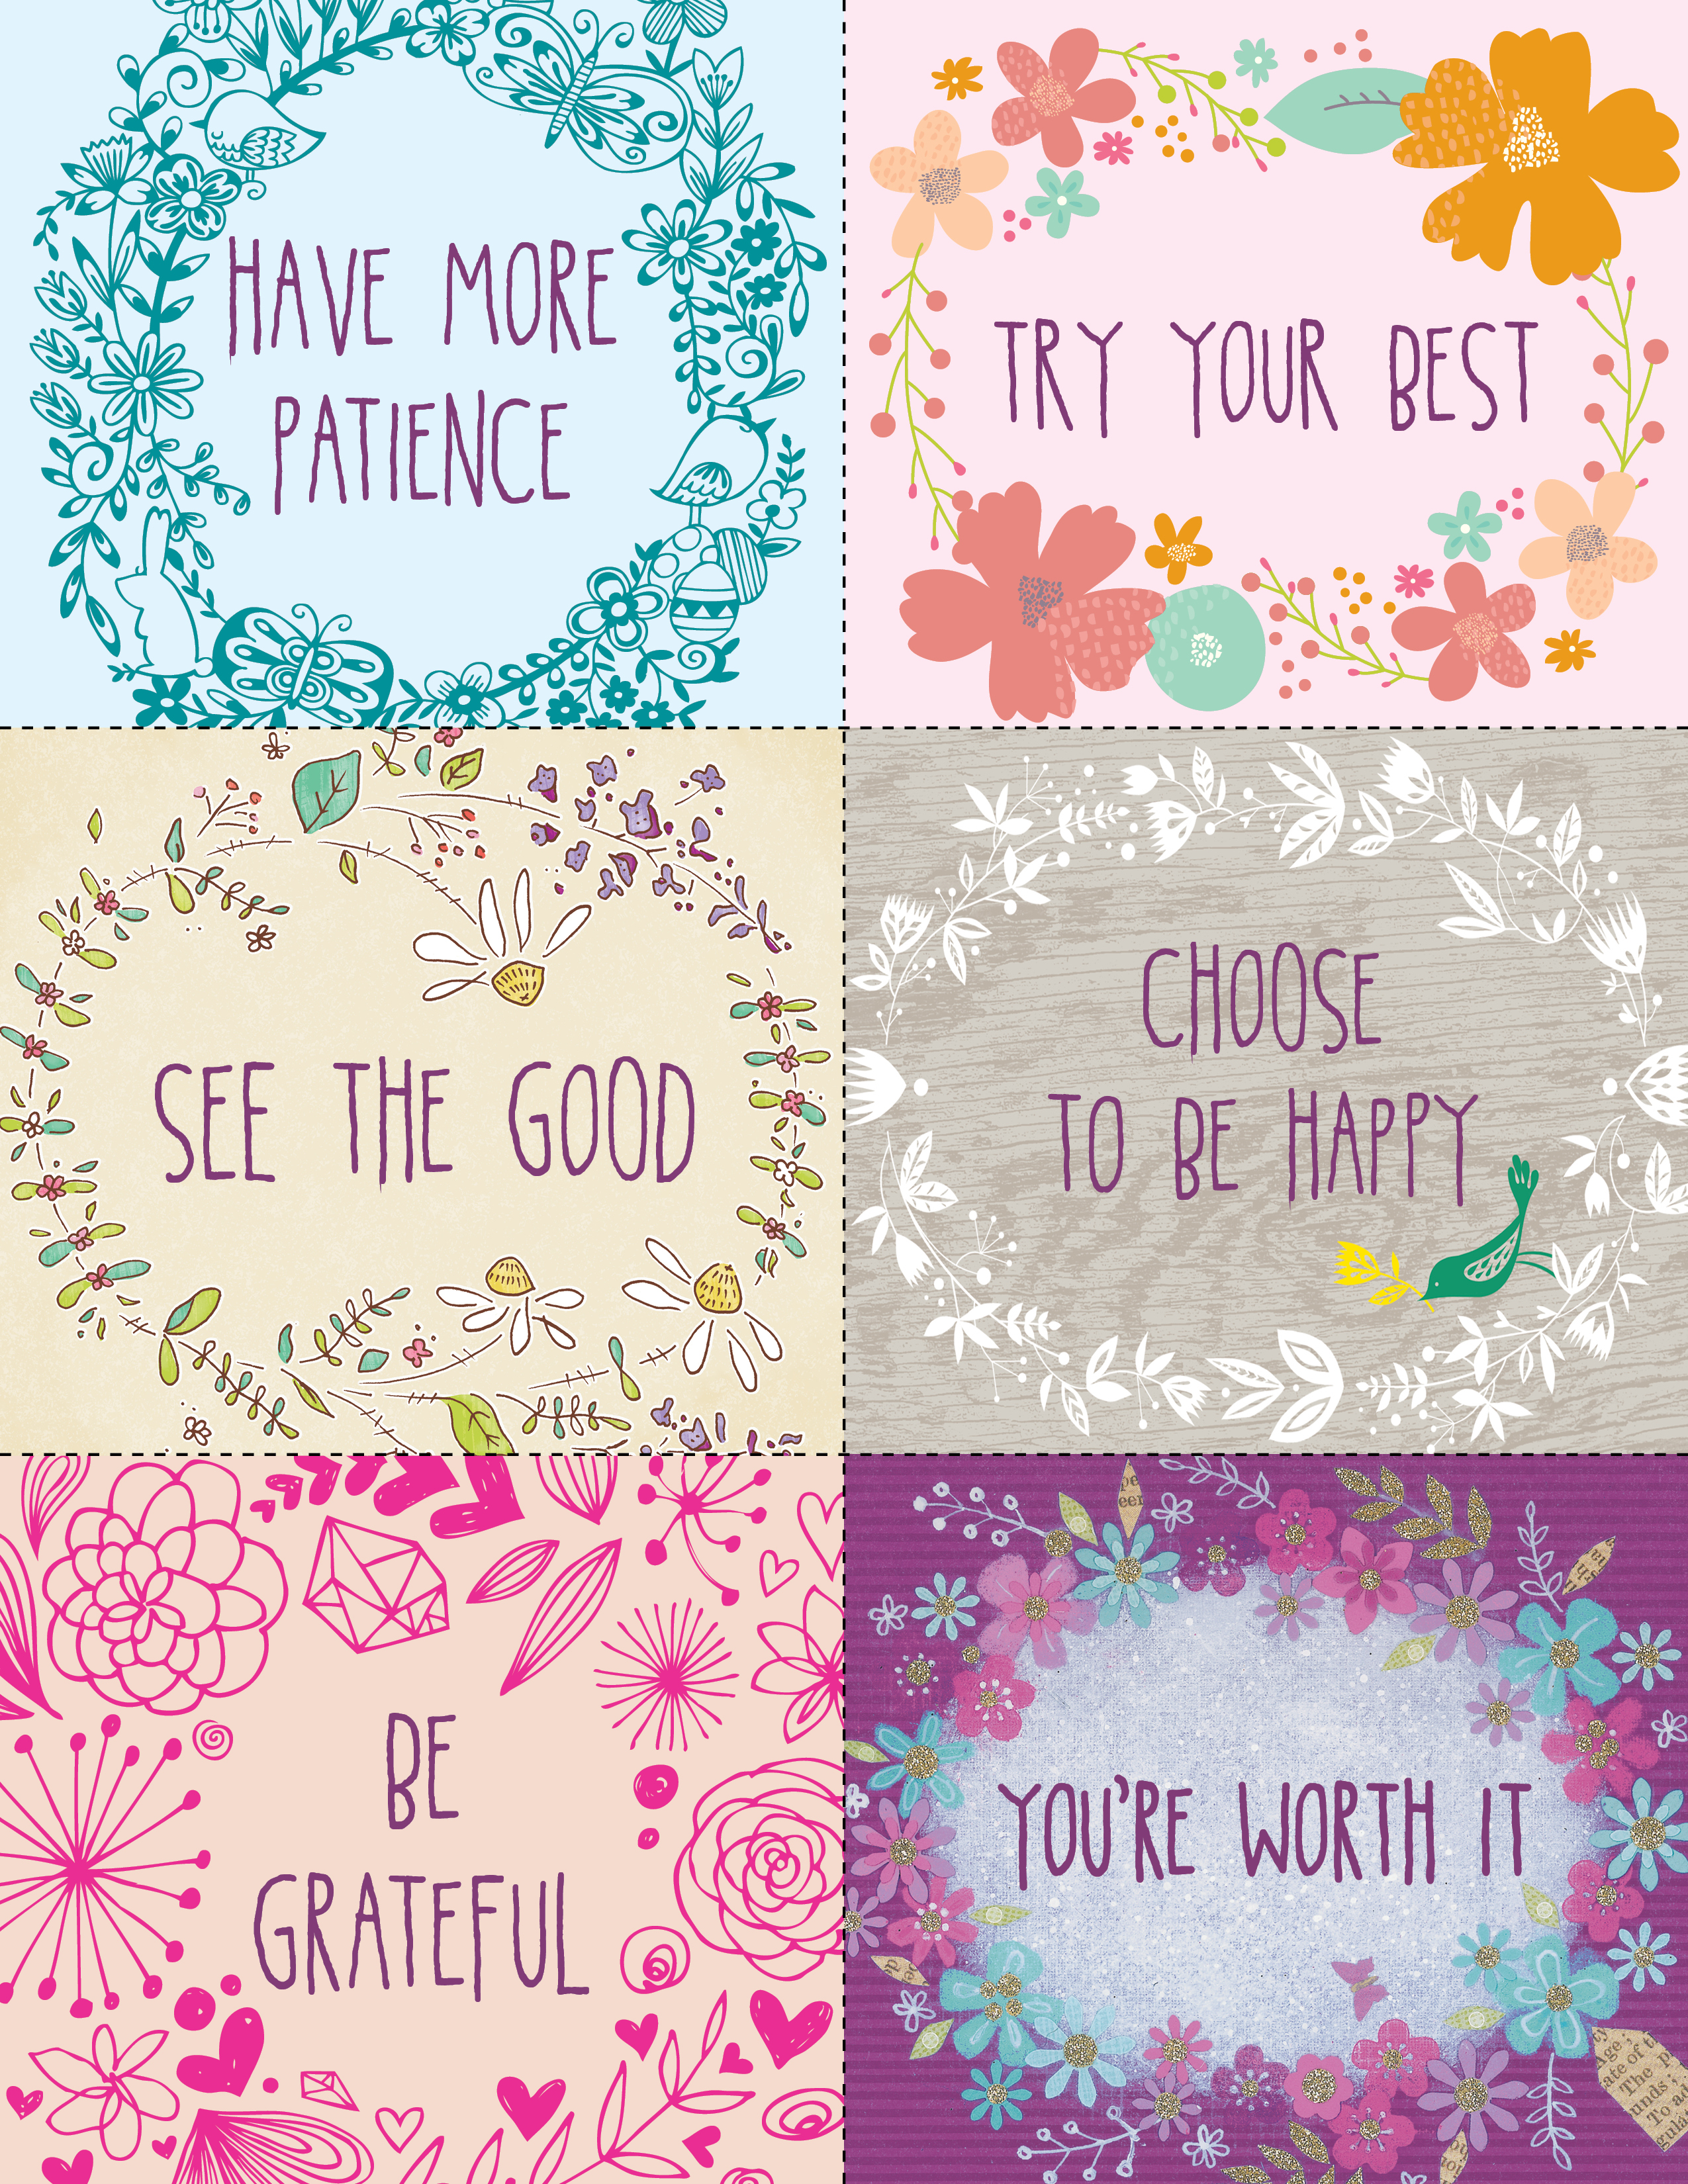 Blue Mountain Ecards Archives